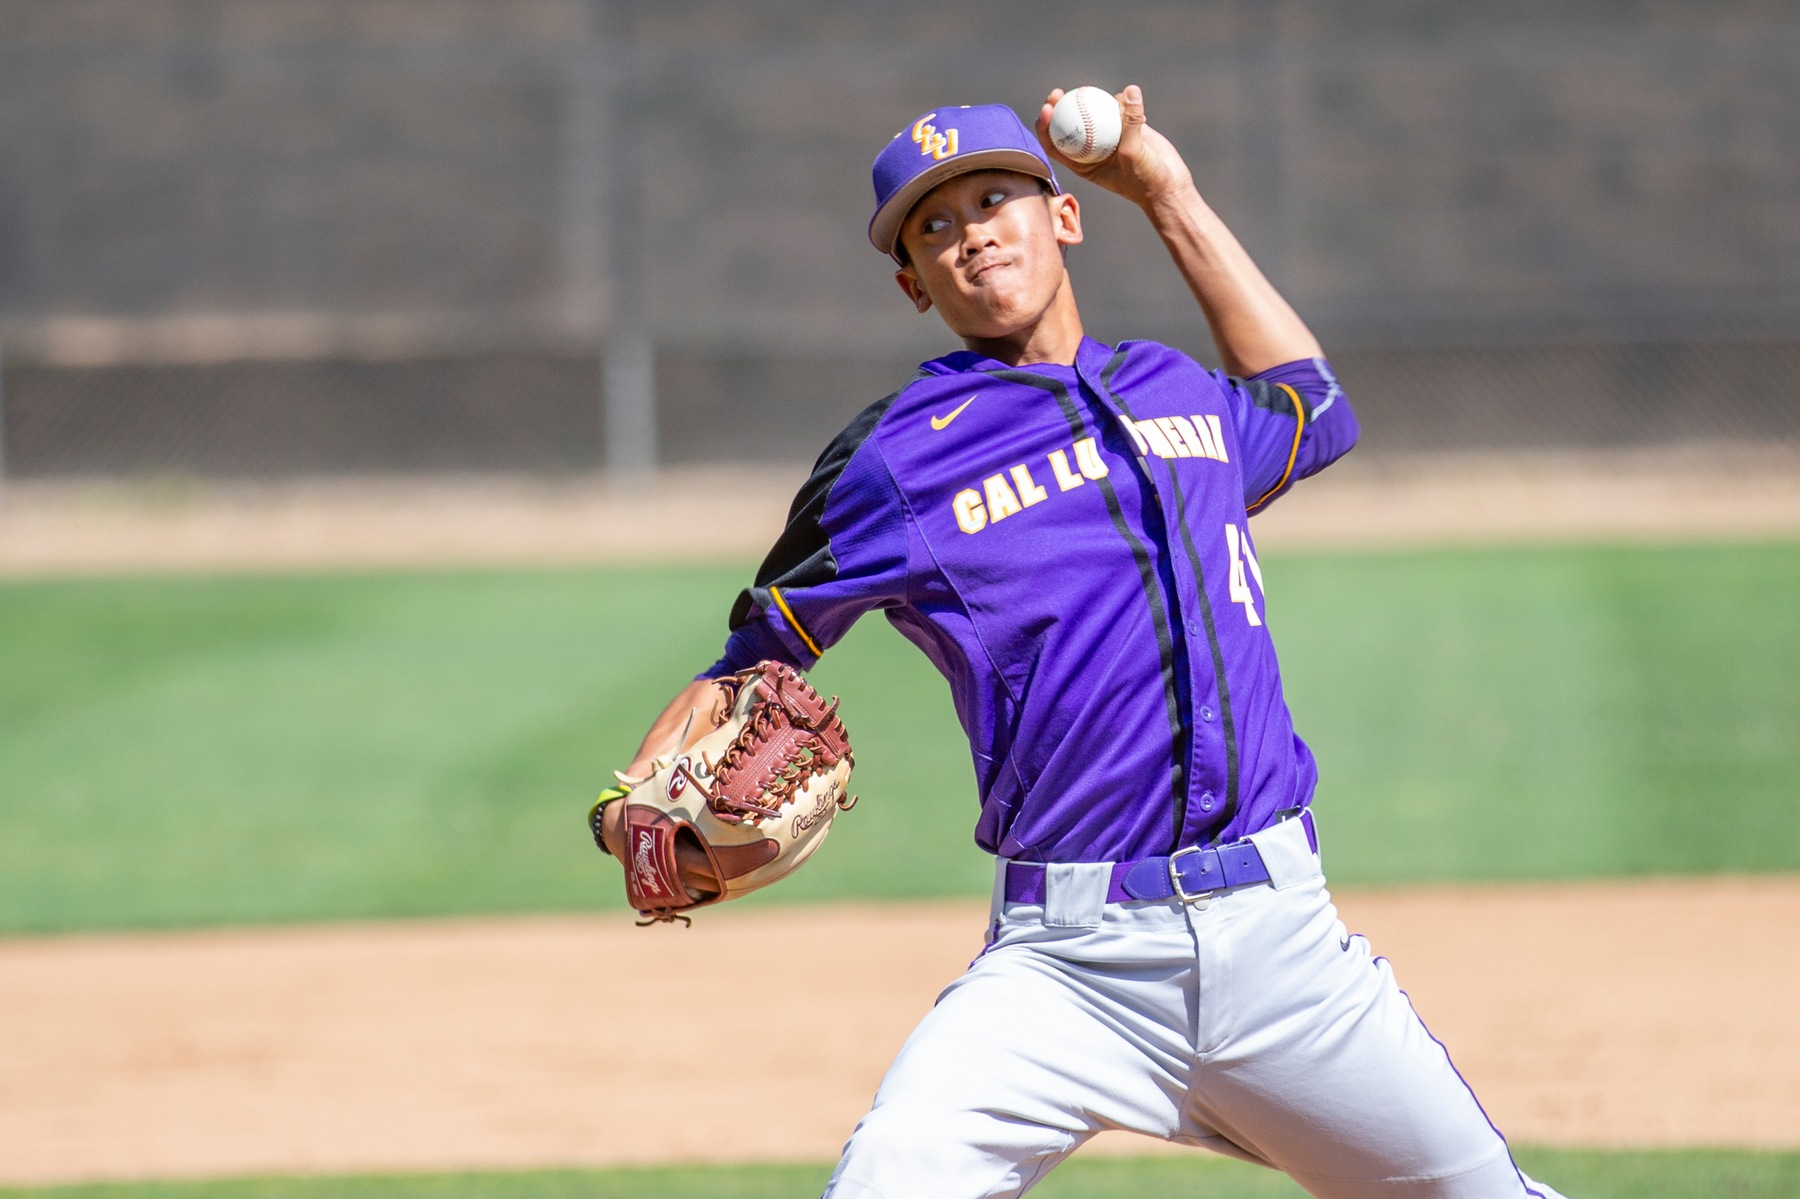 Fong Tosses Fourth Complete Game of the Year Against Whittier